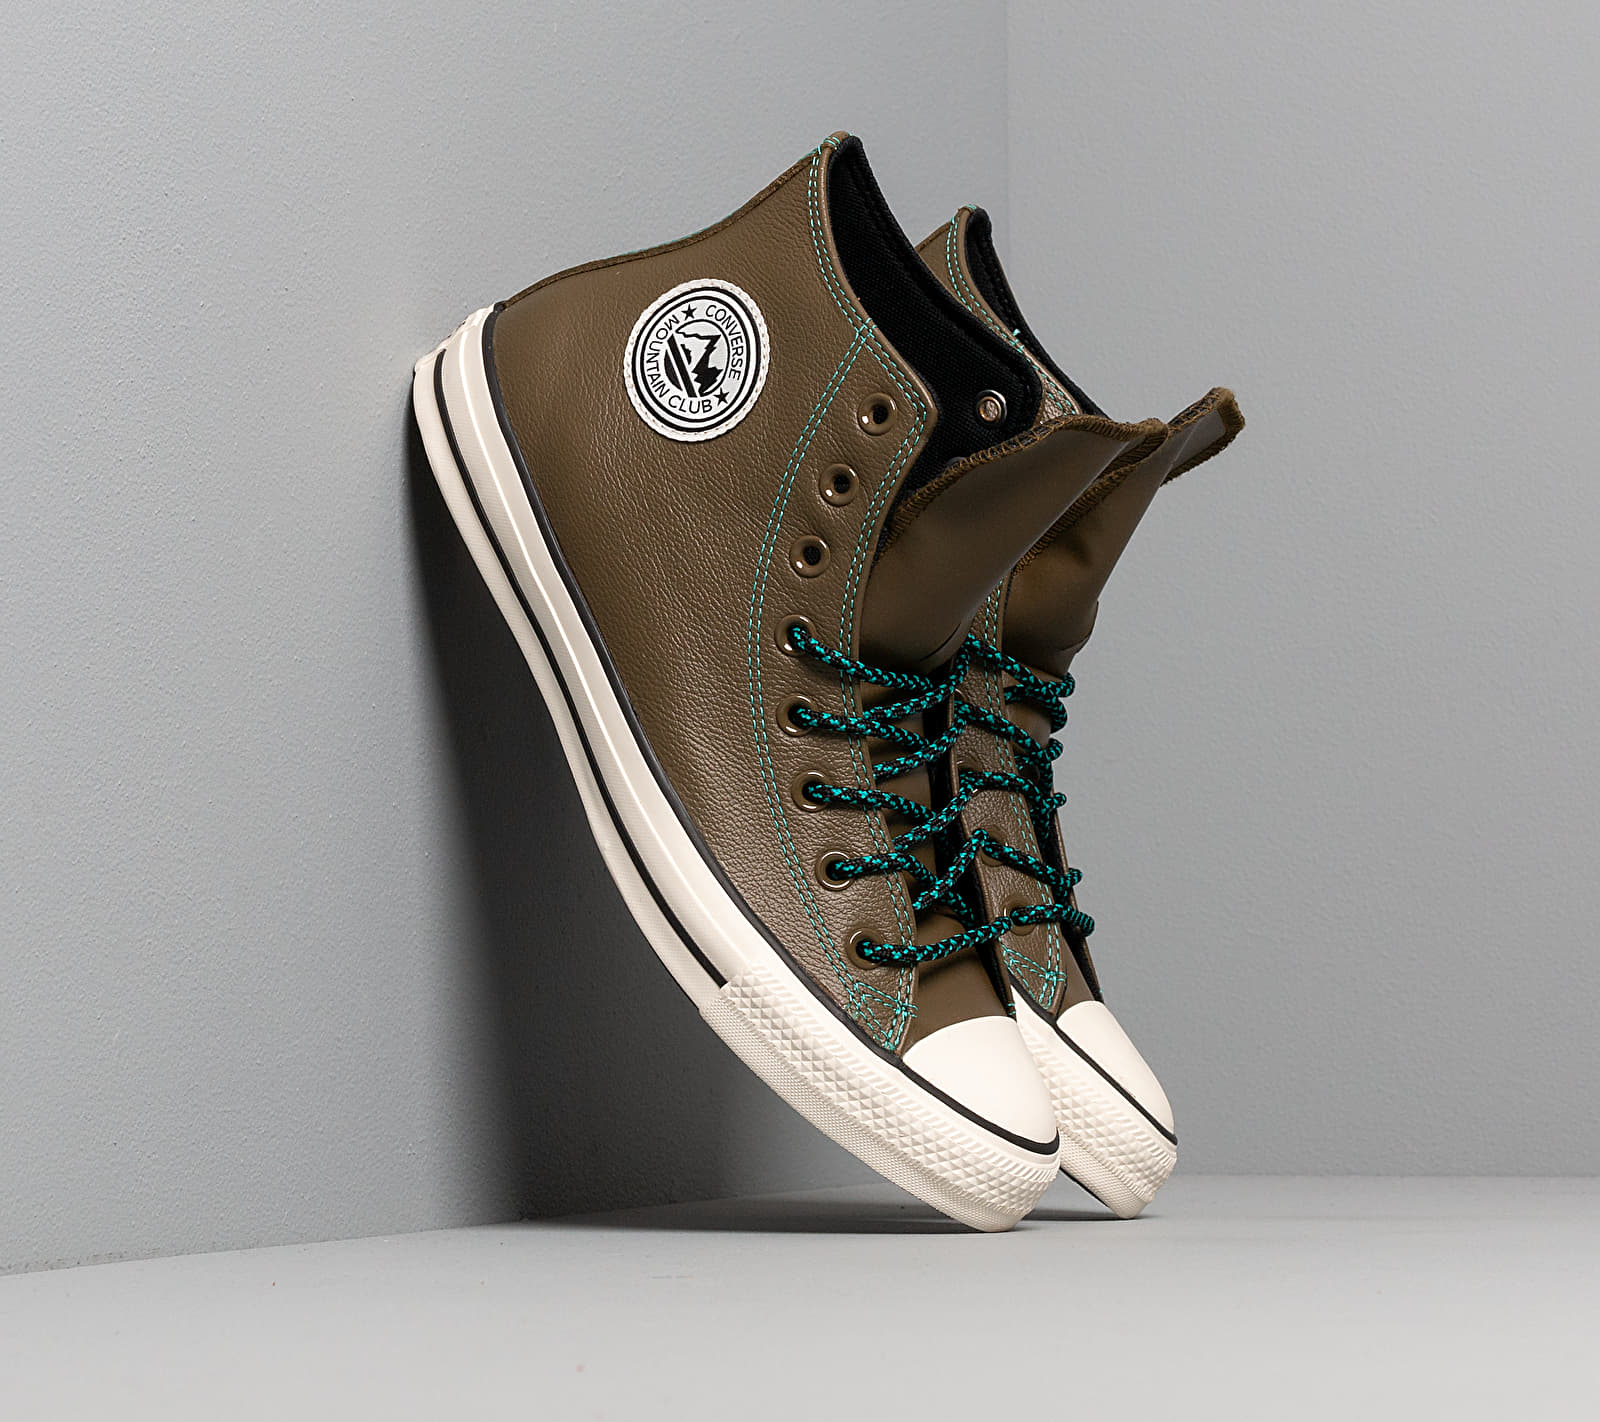 Converse Chuck Taylor All Star Archival Leather Surplus Olive/ Turbo Green/ Egre 165957C